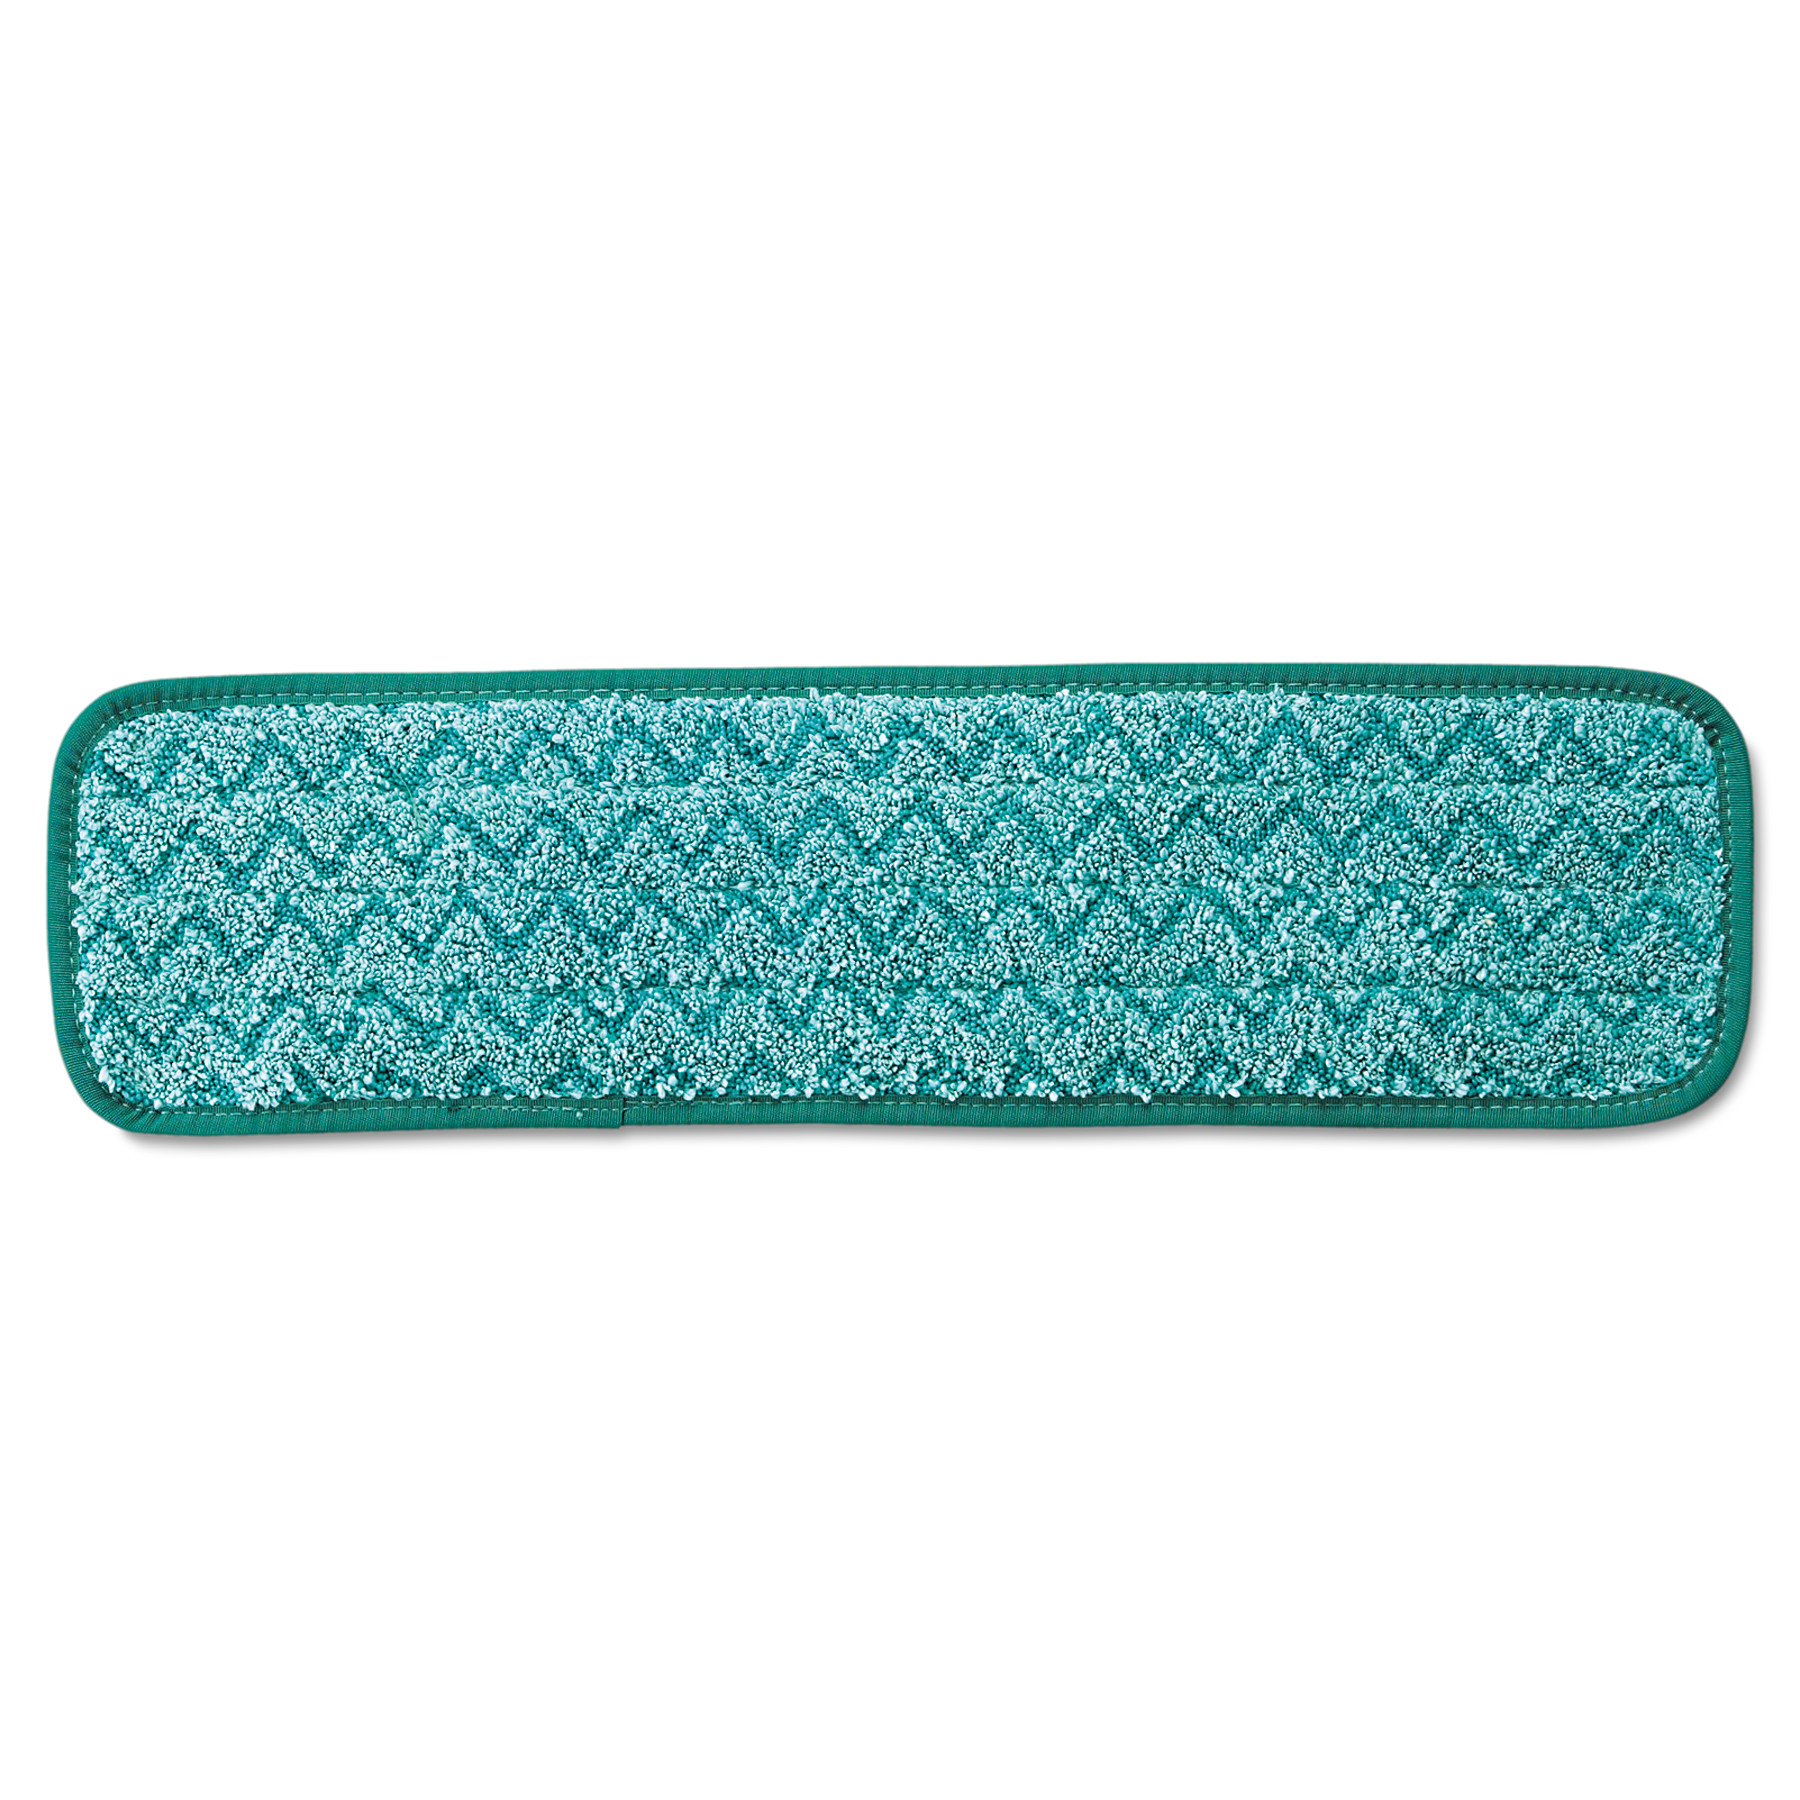 Rubbermaid Commercial Green Microfiber Dust Pads, 12 count